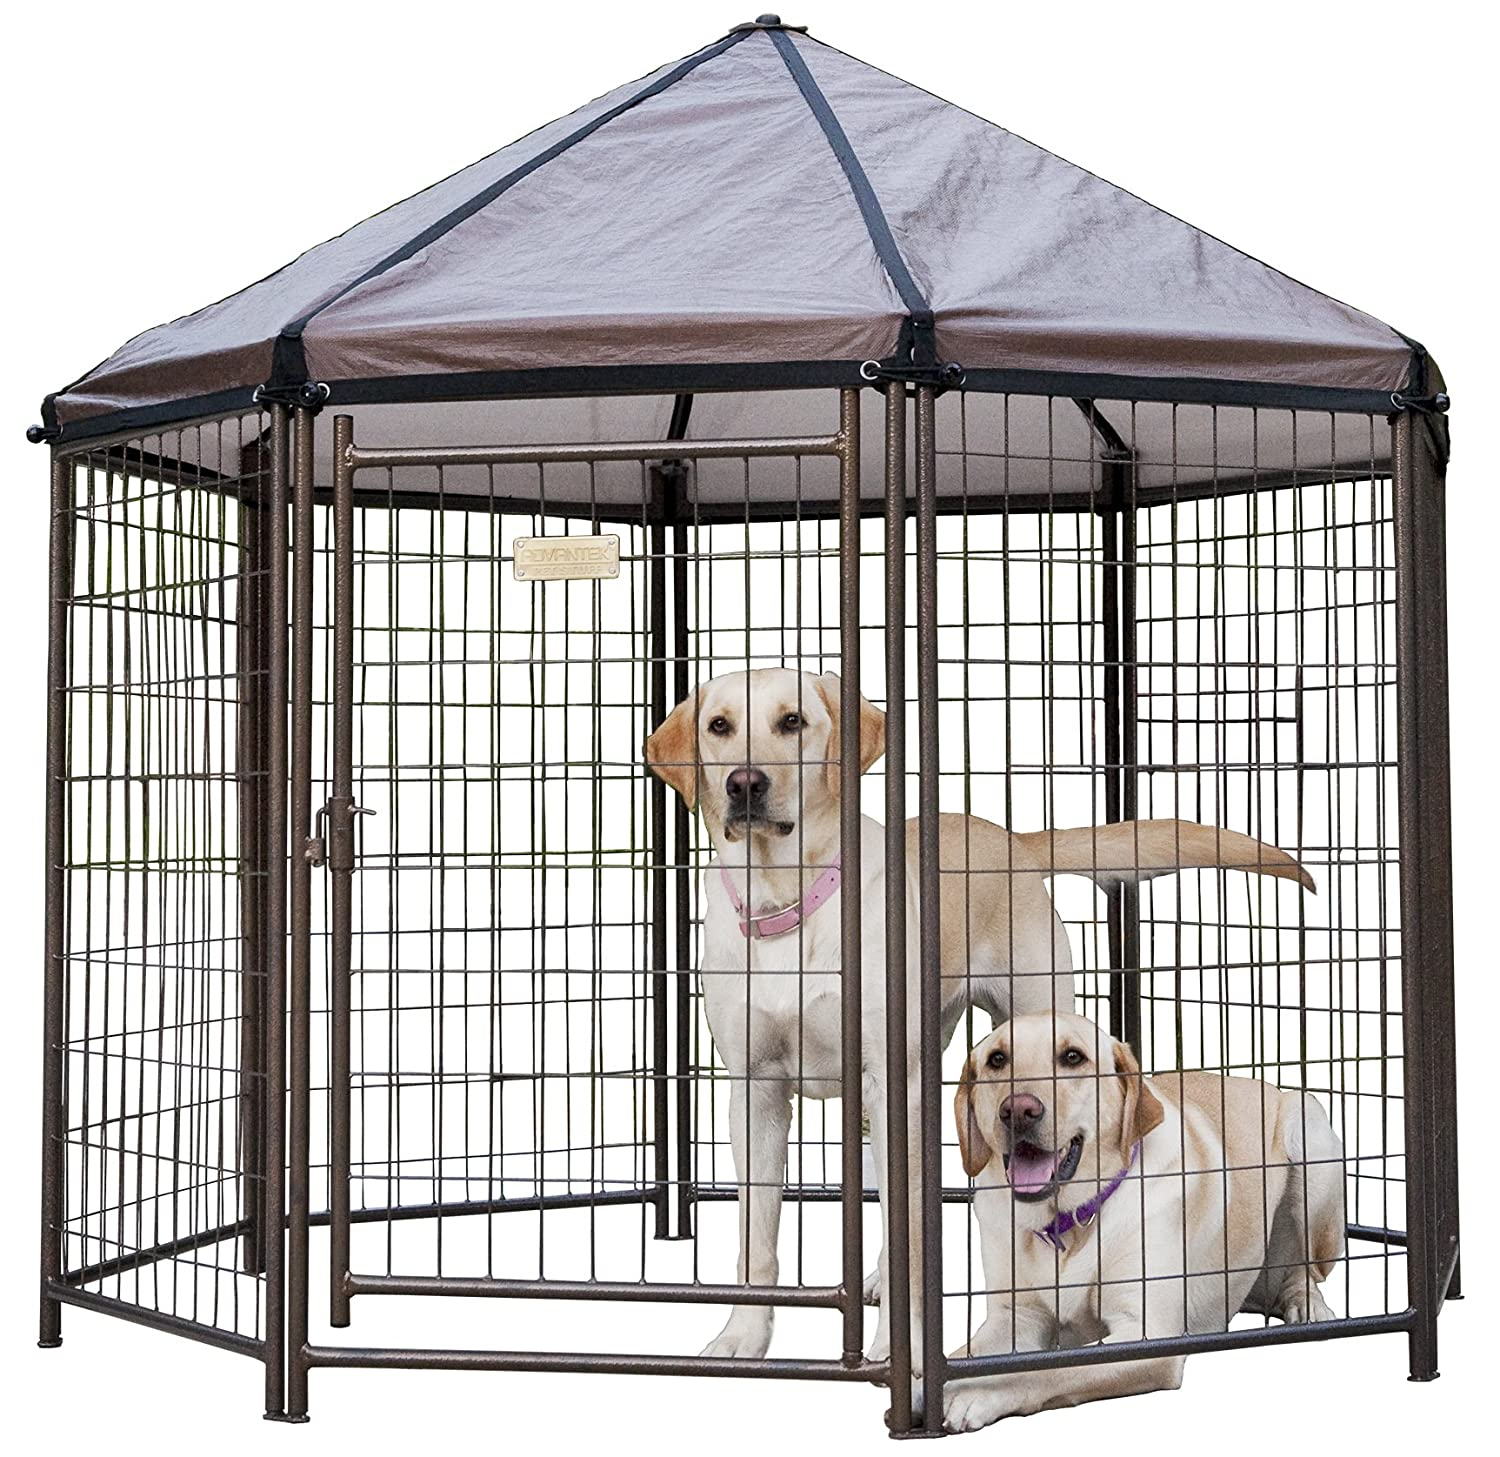 Advantek Pet Gazebo Modular Outdoor Dog Kennel